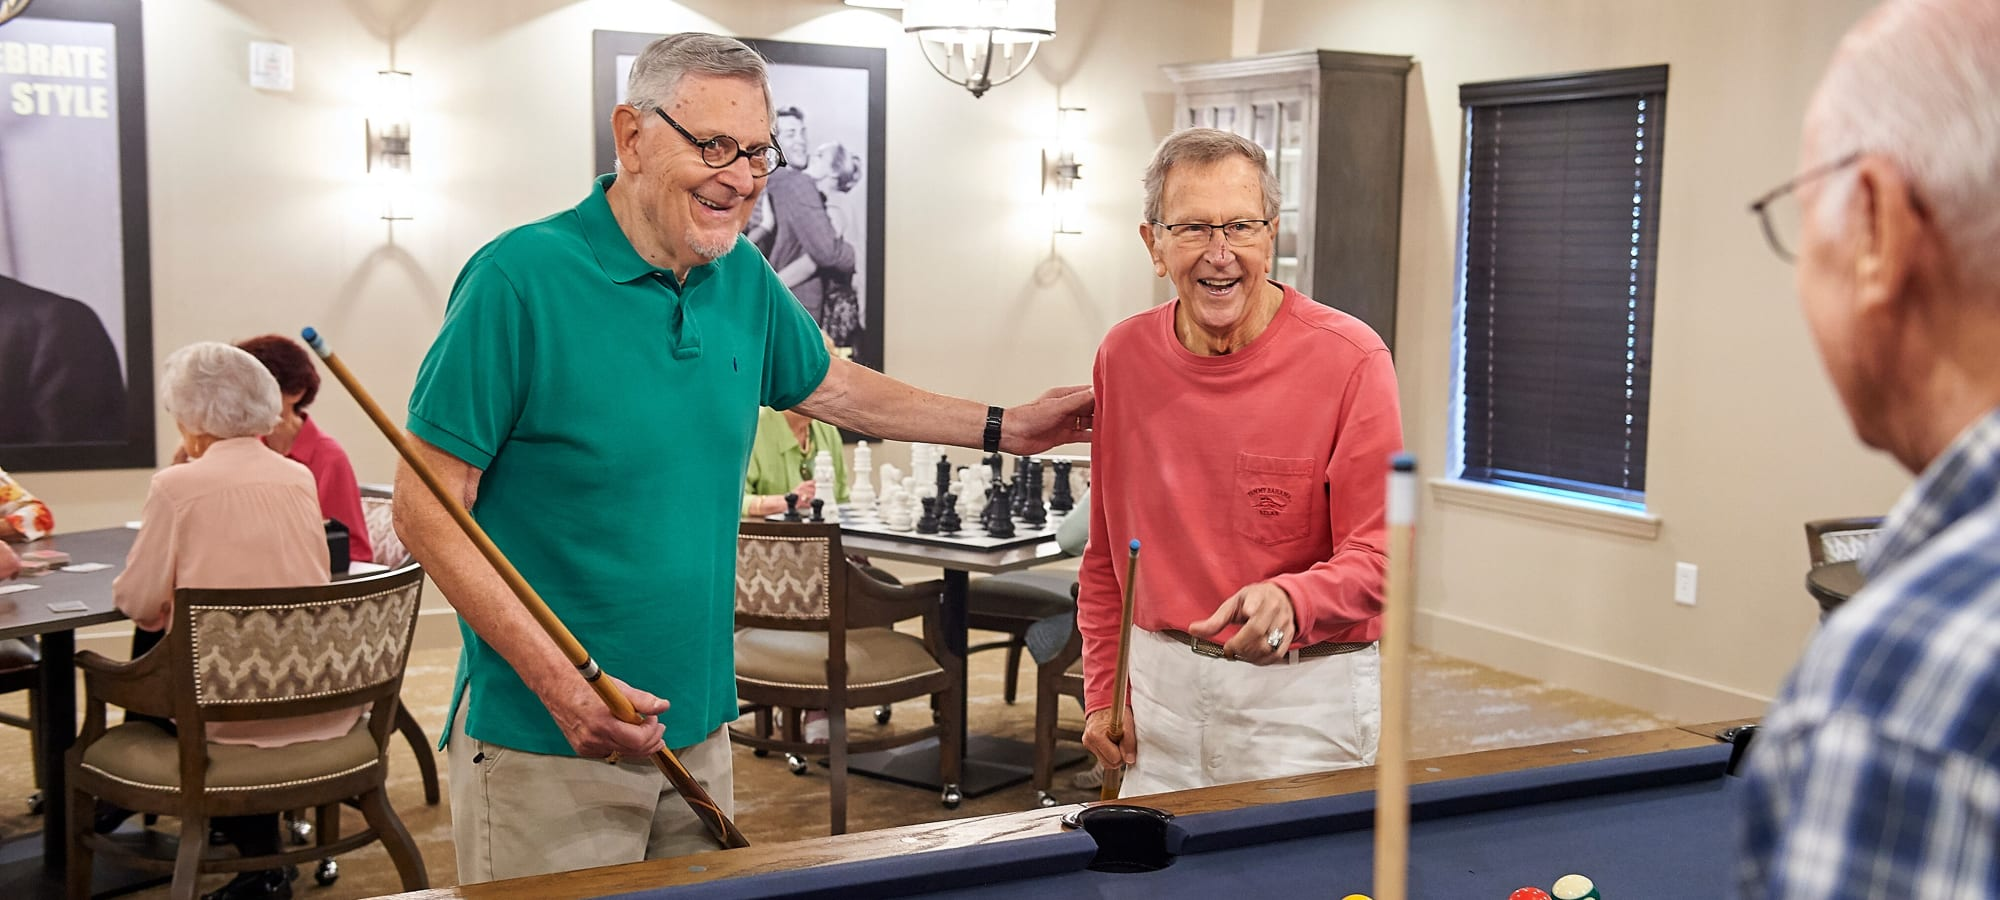 Residents playing pool at AgeWell Living